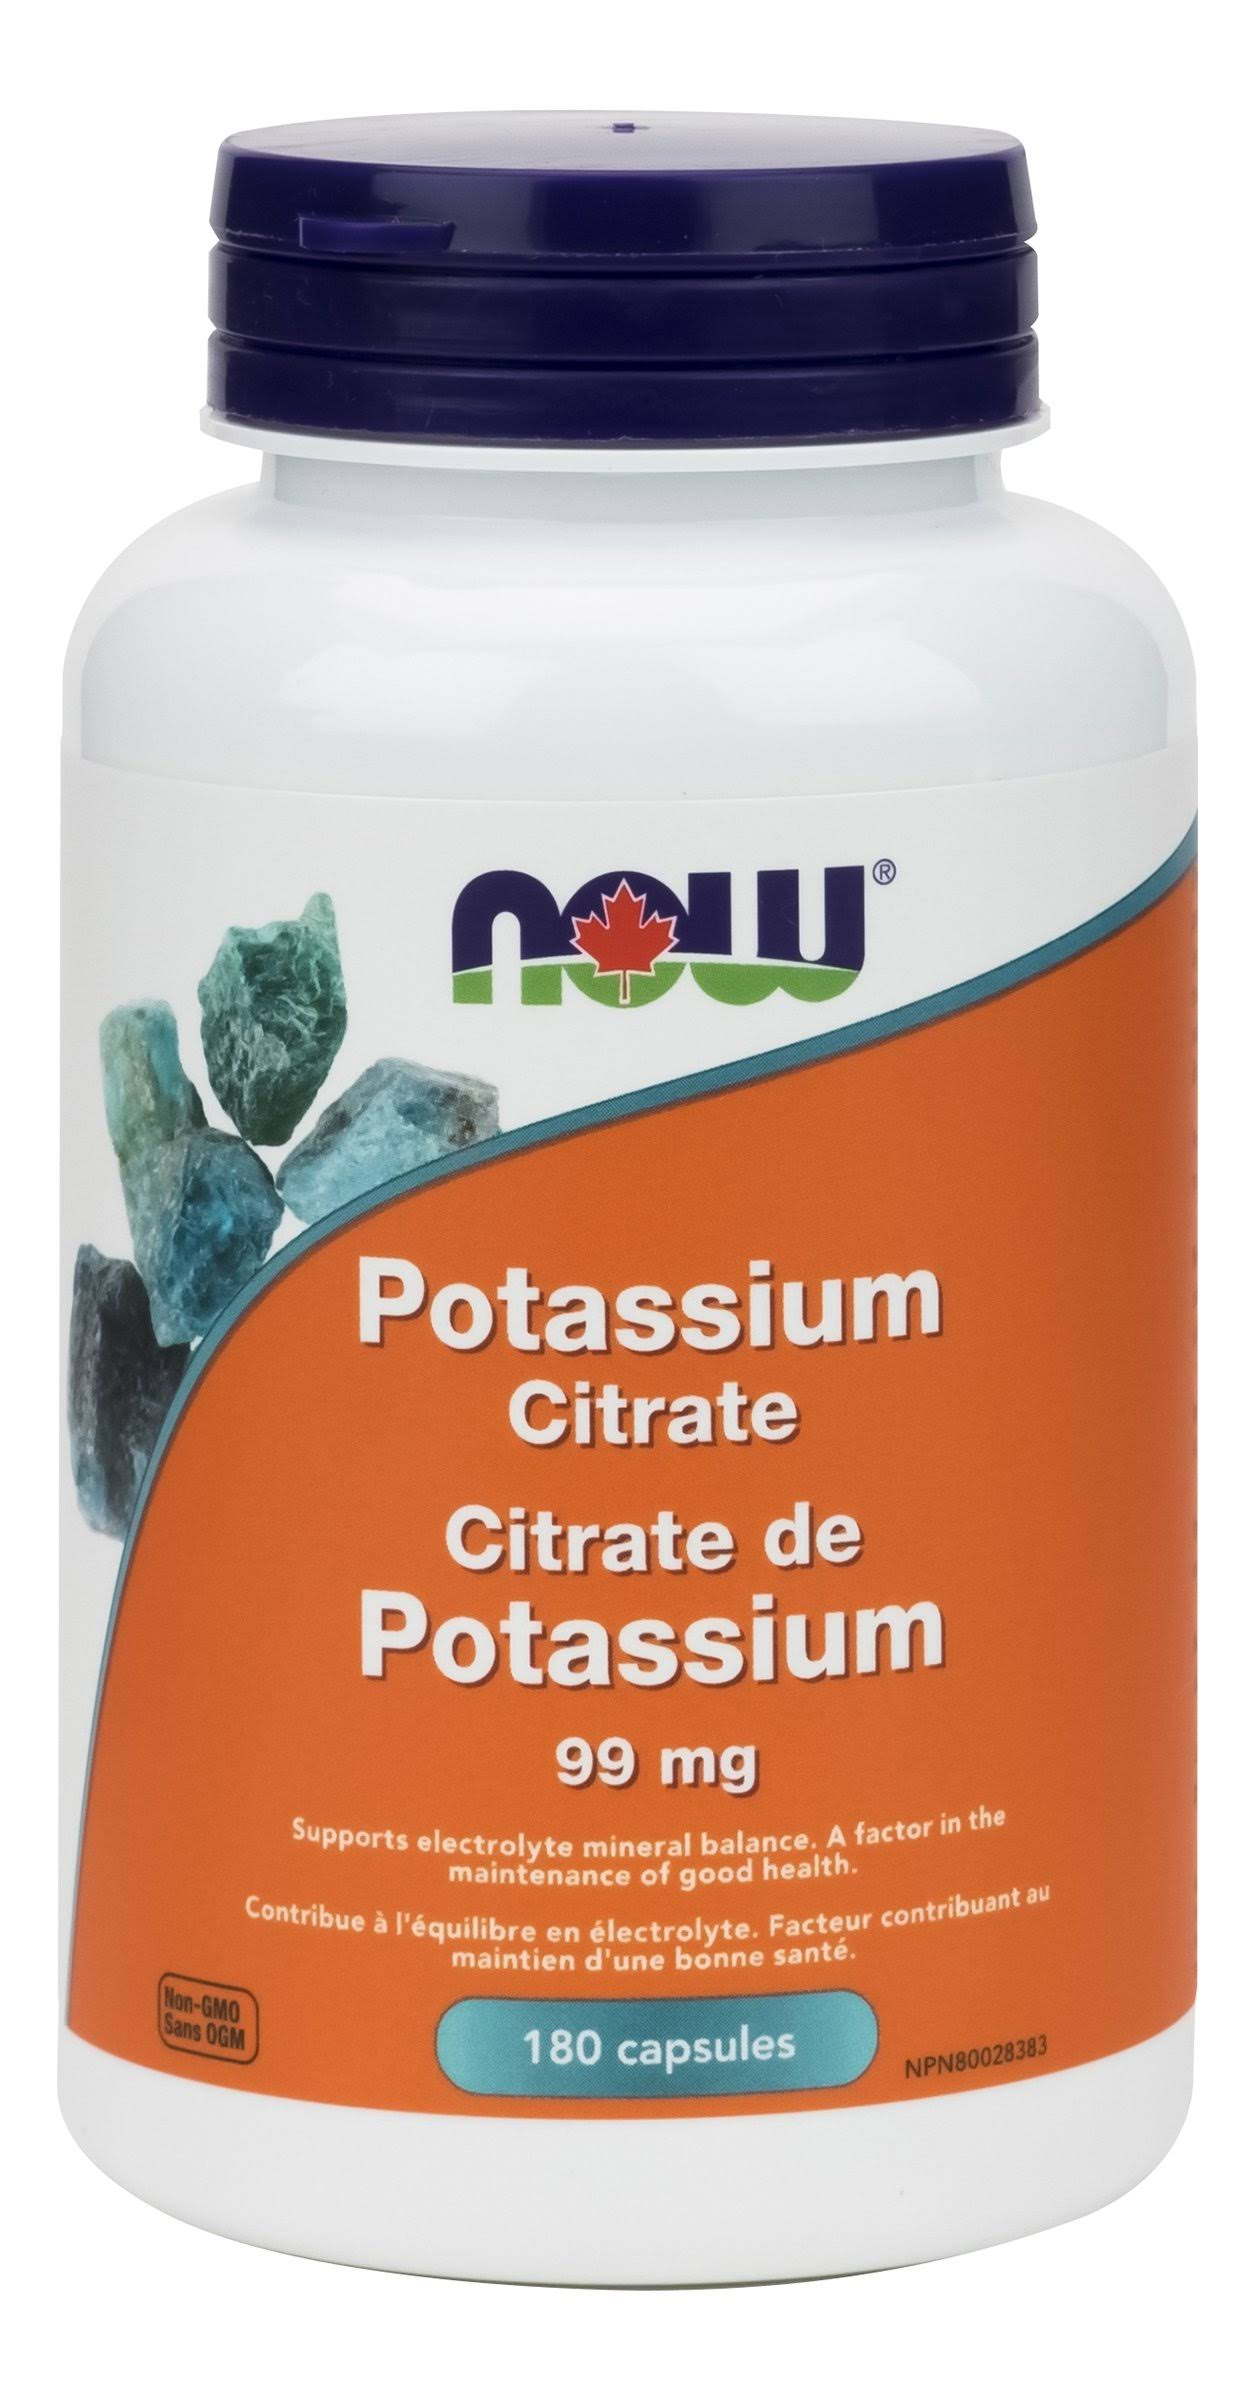 Now Potassium Citrate - Supports Electrolyte Mineral Balance - 180 Cap